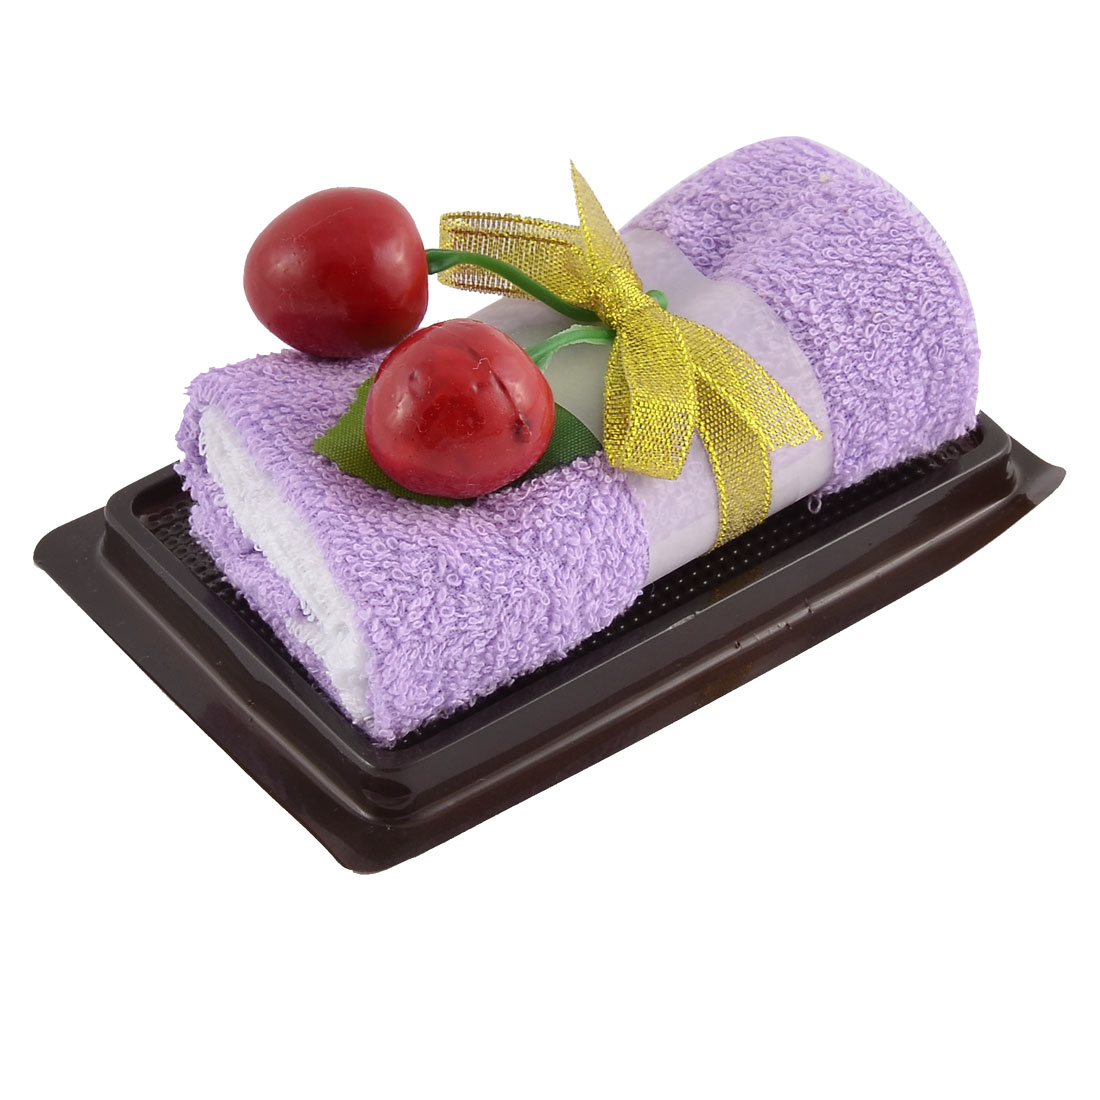 Simulated Cherry Leaf Detail Roll Cake Towel Facecloth Washcloth Decor Gift Purple